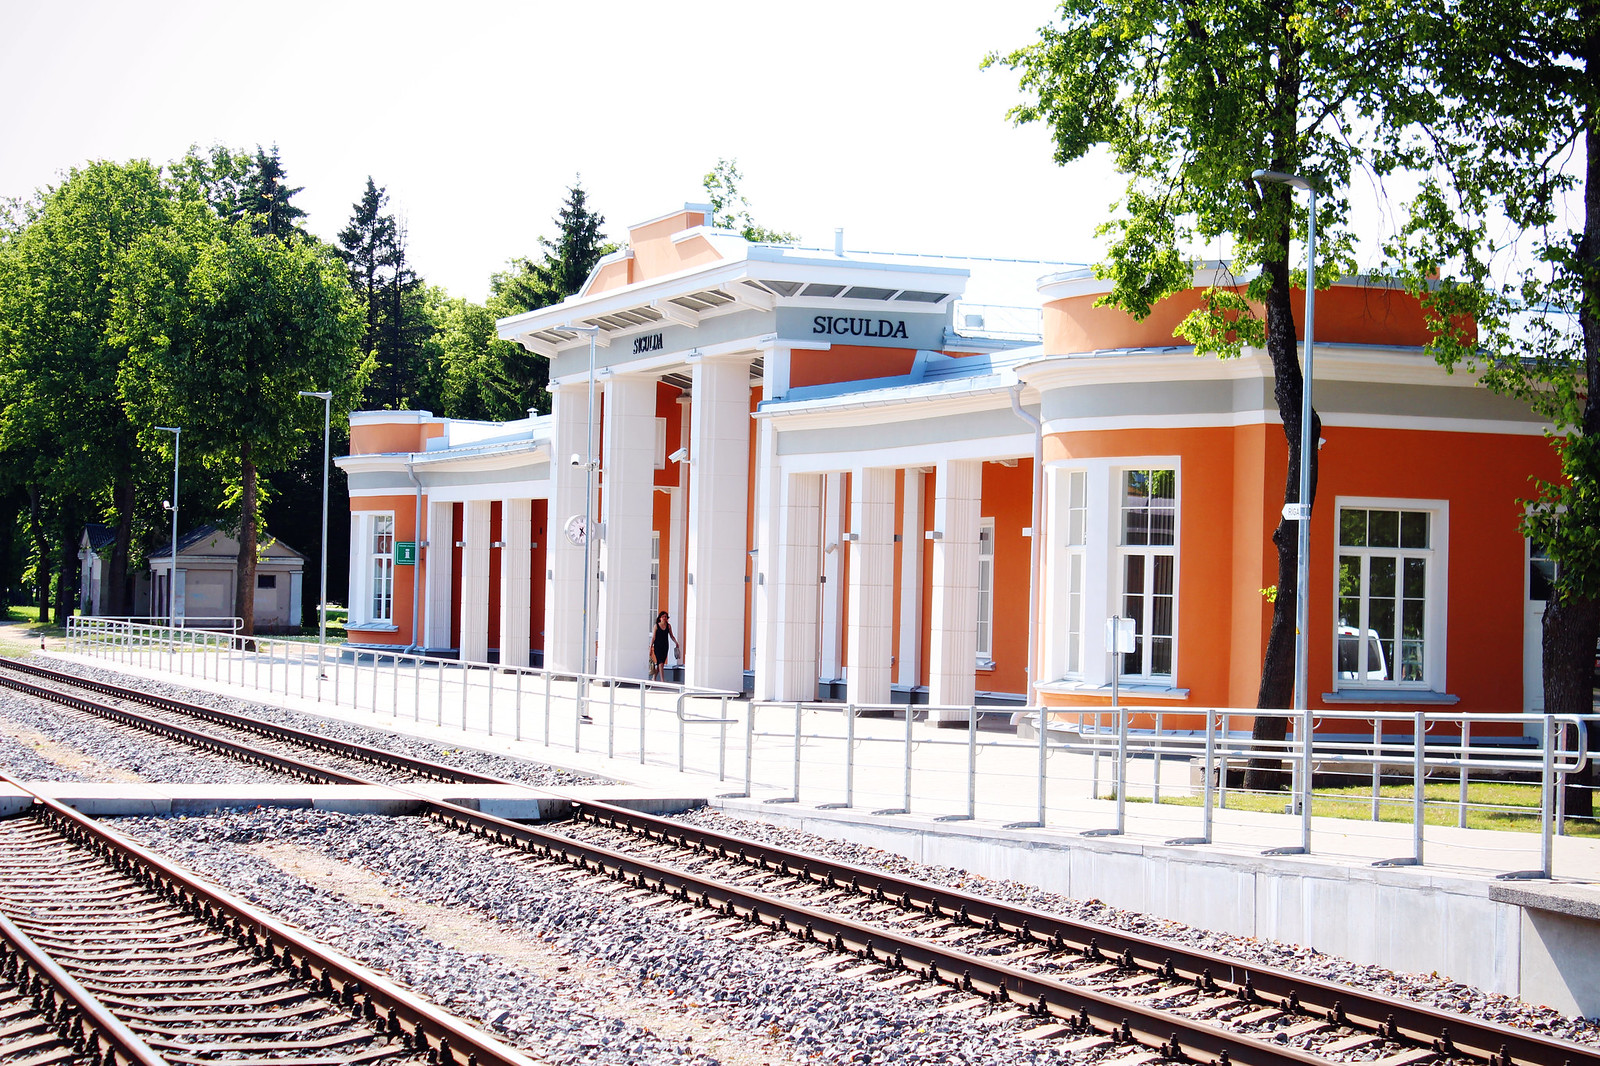 sigulda-train-station